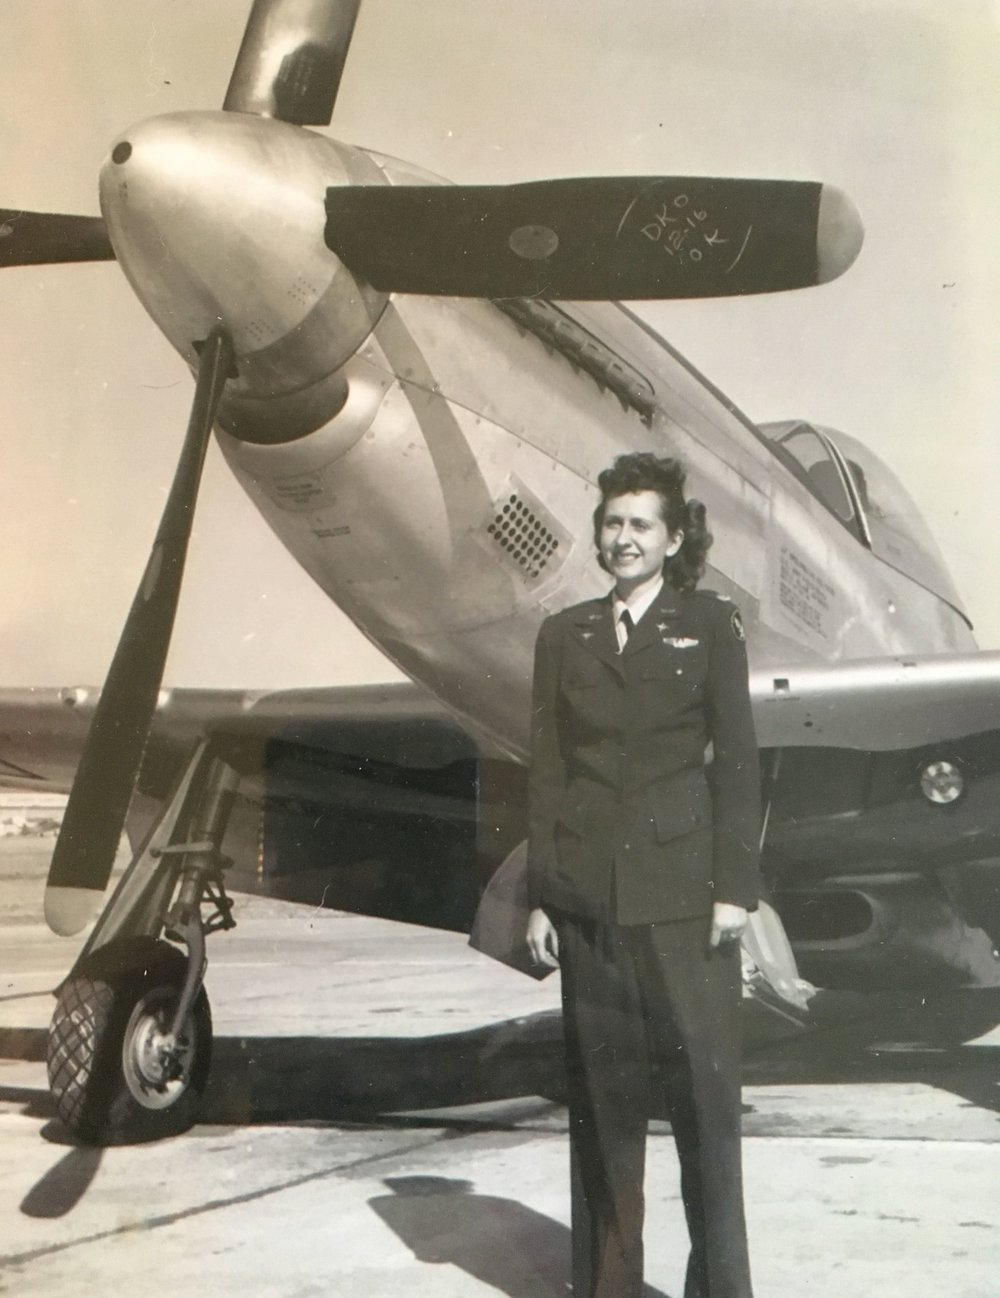 Rosa Lea and the P-51 Mustang.